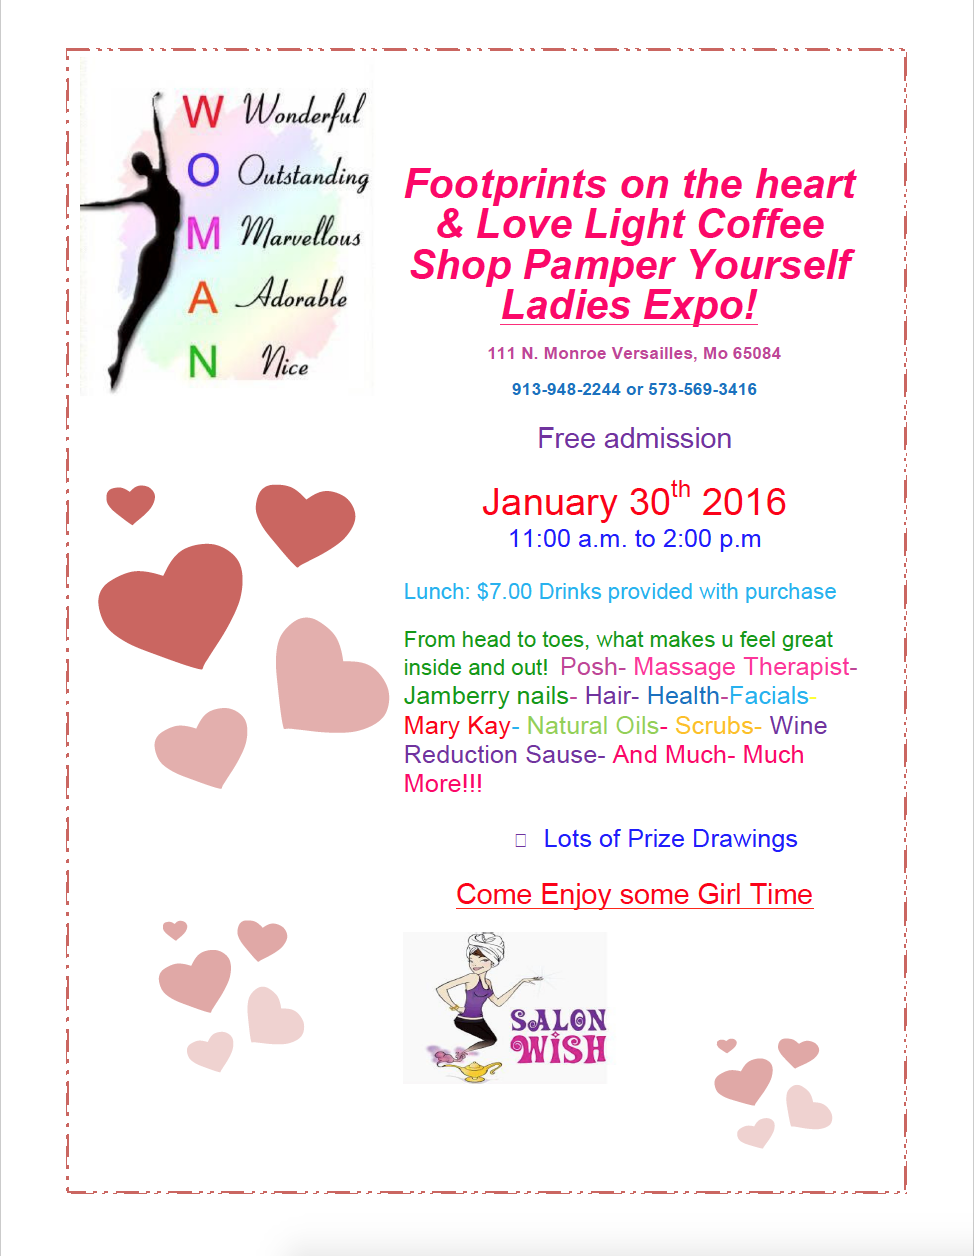 Footprints on the Heart & Love Light Coffee Shop Pamper Yourself Ladies Expo